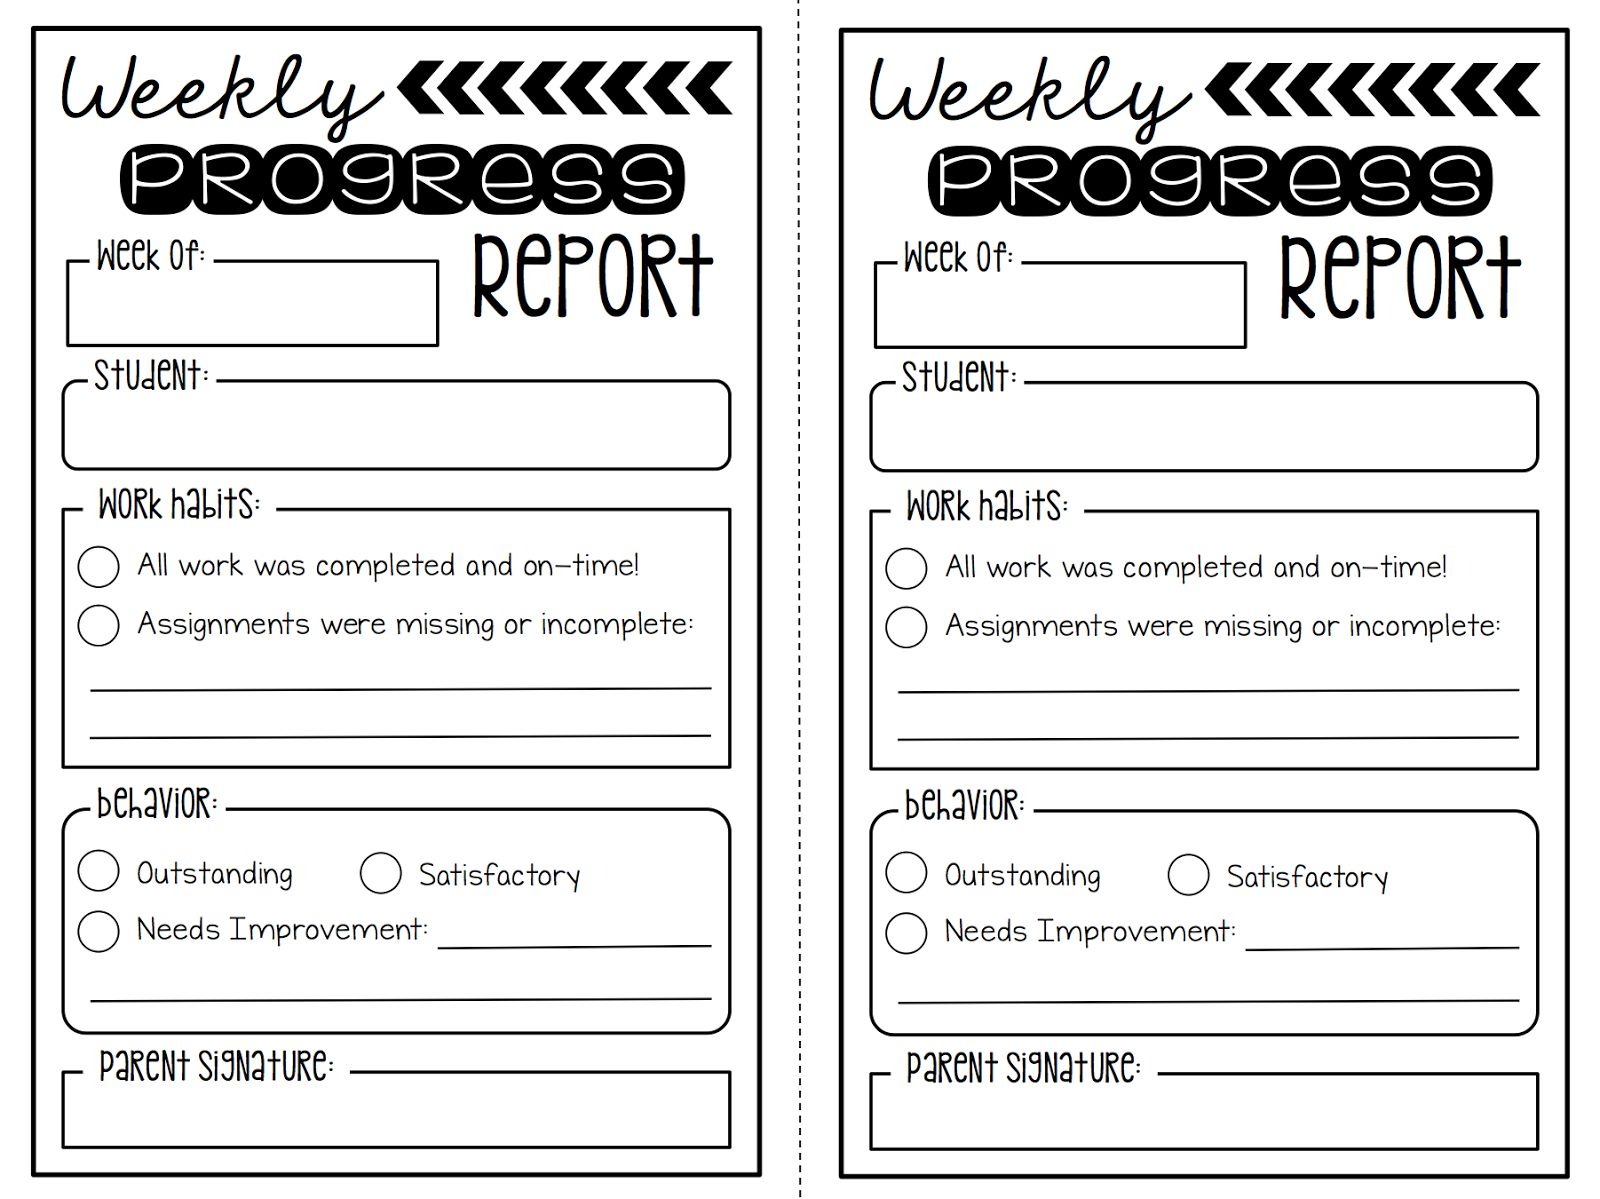 Weekly Behavior Report Template Search Results For For Daily Behavior Report Template Bes Weekly Behavior Report Progress Report Progress Report Template